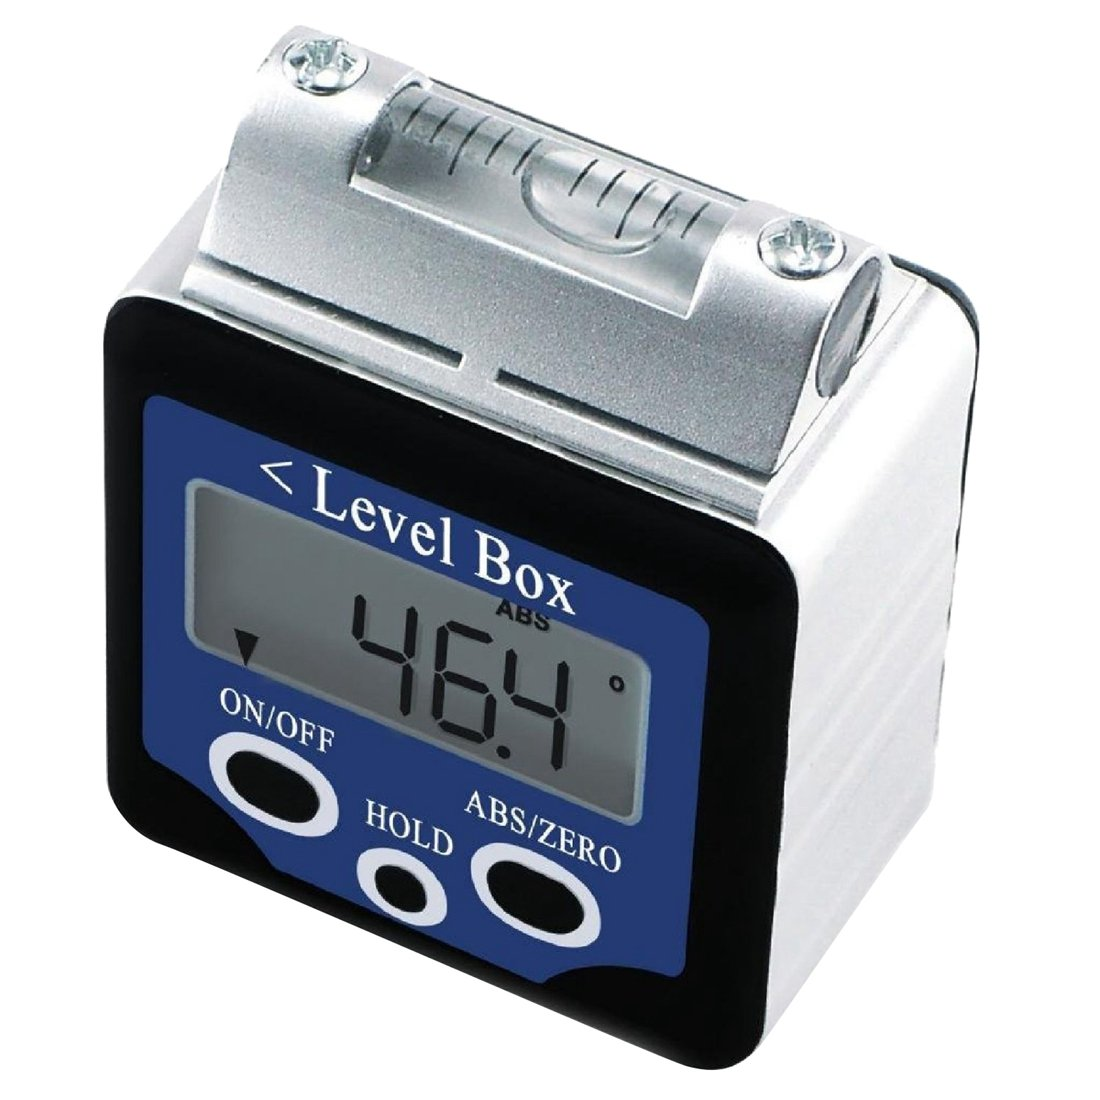 Cheap Digital Spirit Level Inclinometer Find Way Gradienter Switch Sensor Get Quotations Sodialr Bevel Box Angle Finder Gauge 360 Degrees Protractor